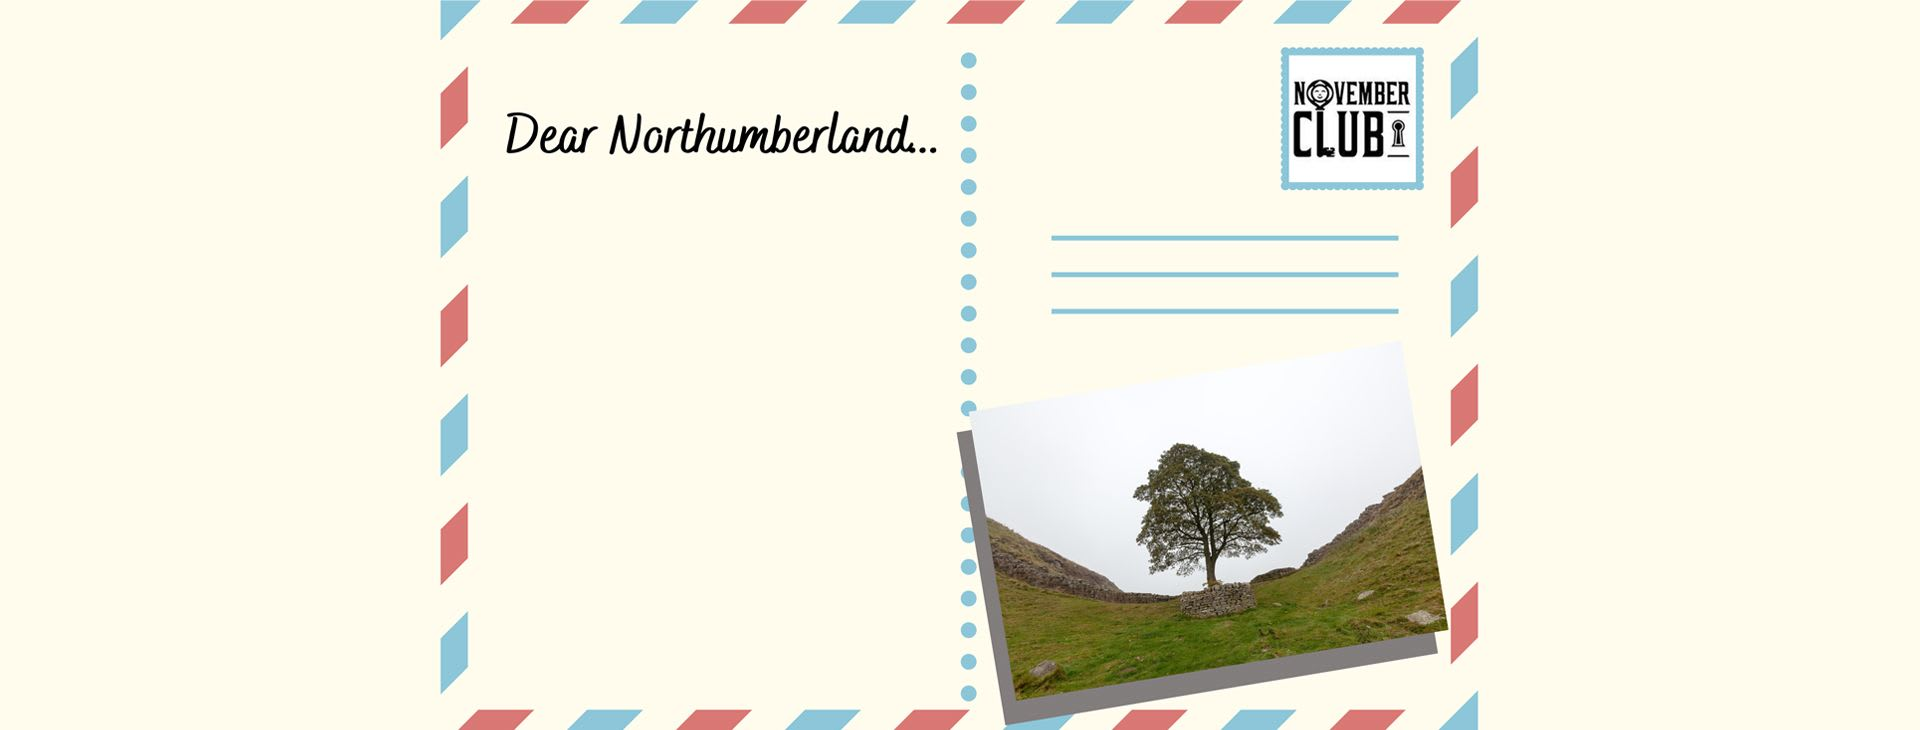 Postcard view of Sycamore Gap on Hadrians Wall